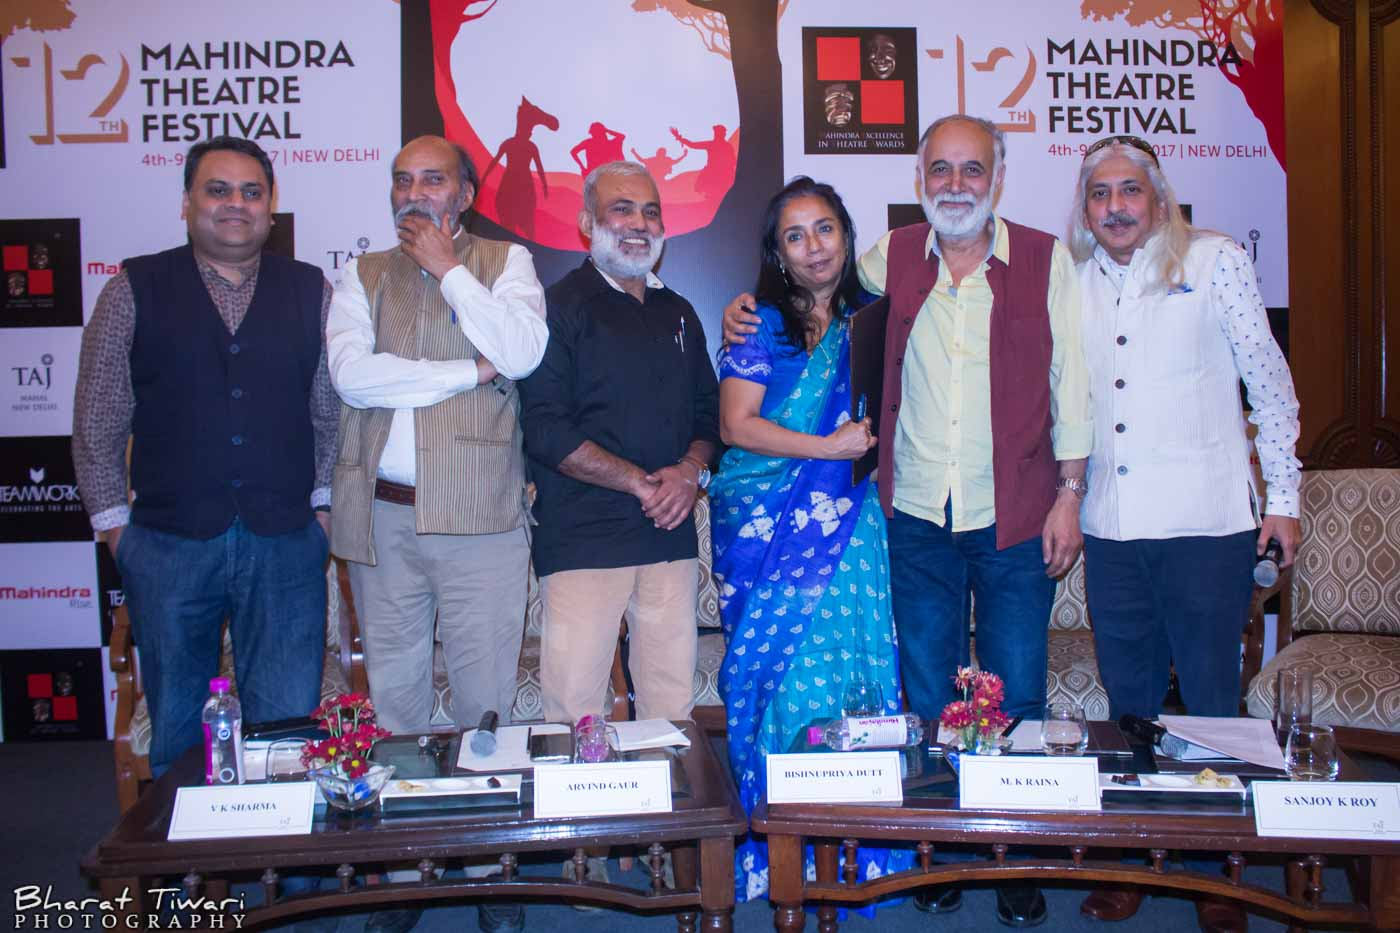 The launch also featured a discussion on 'The Politics of Theatre' focusing on how theatre is seminal to social change. A panel moderated by Sanjoy K Roy, including popular theatre artists and playwrights Arvind Gaur, M.K. Raina, Bishnupriya Dutt and V K Sharma discussed how theatre can be a reflection of the times as well as a catalyst for social change